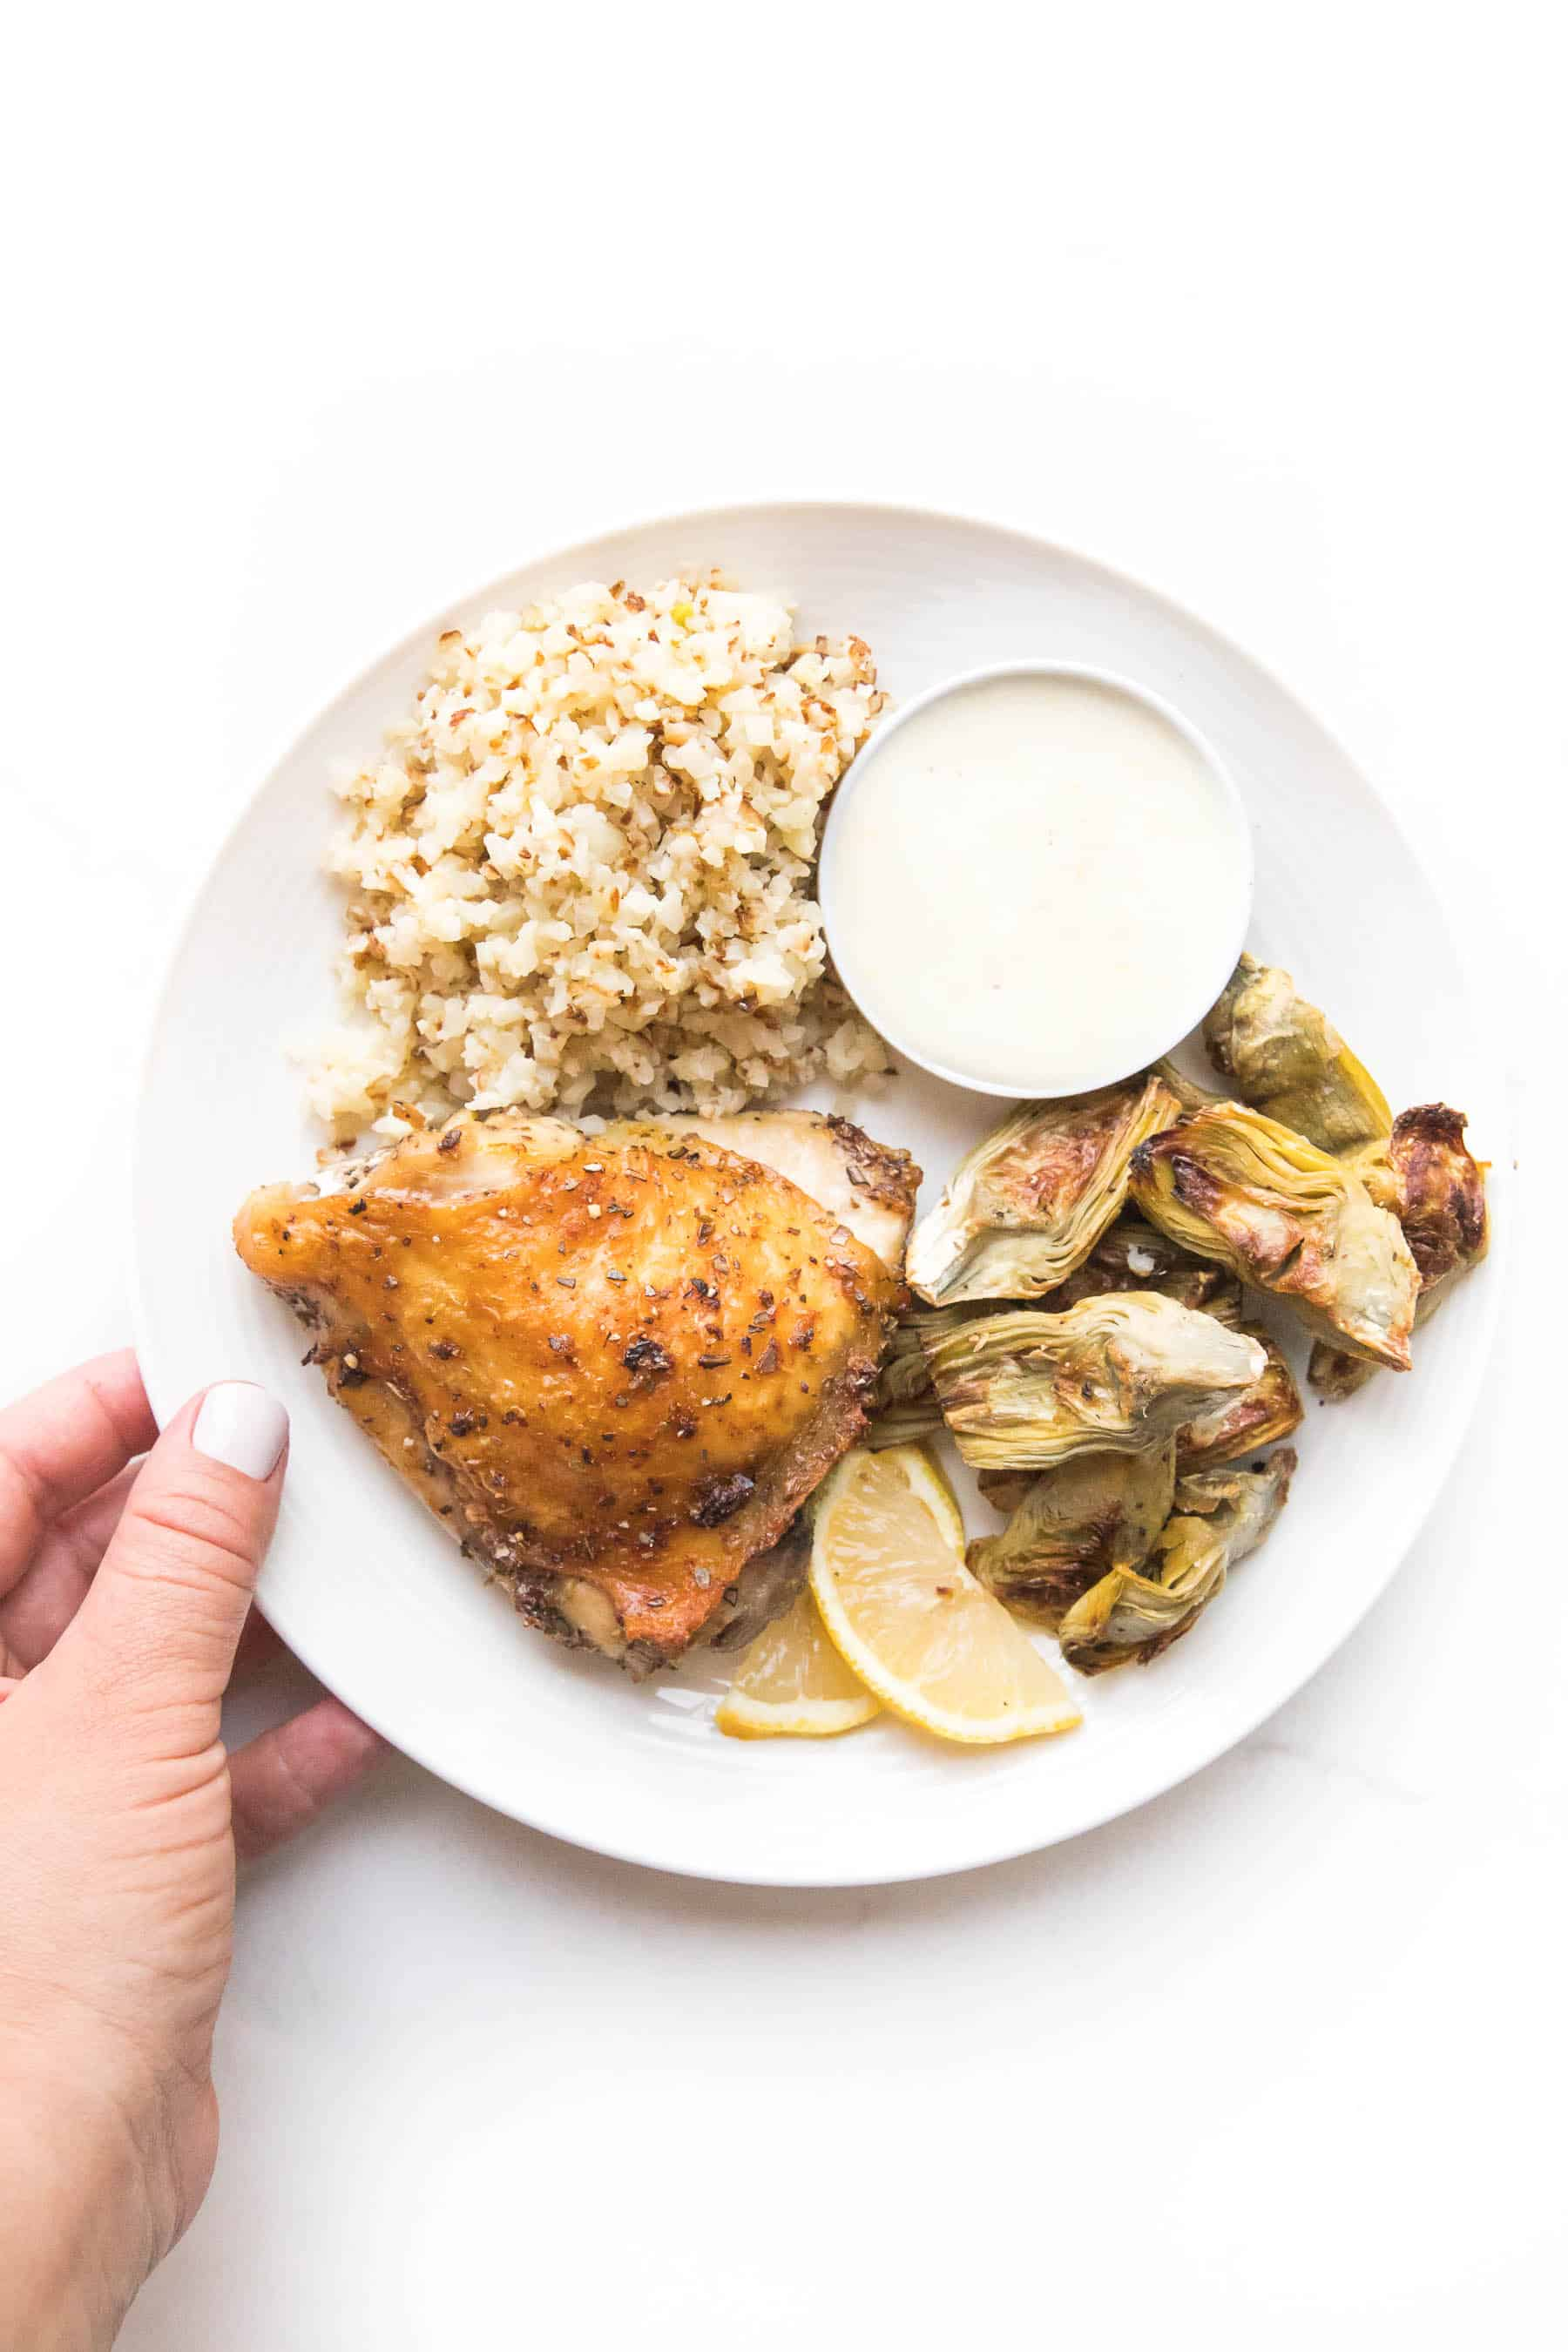 hand holding a white plate with chicken thigh, roasted artichoke hearts and cauliflower rice